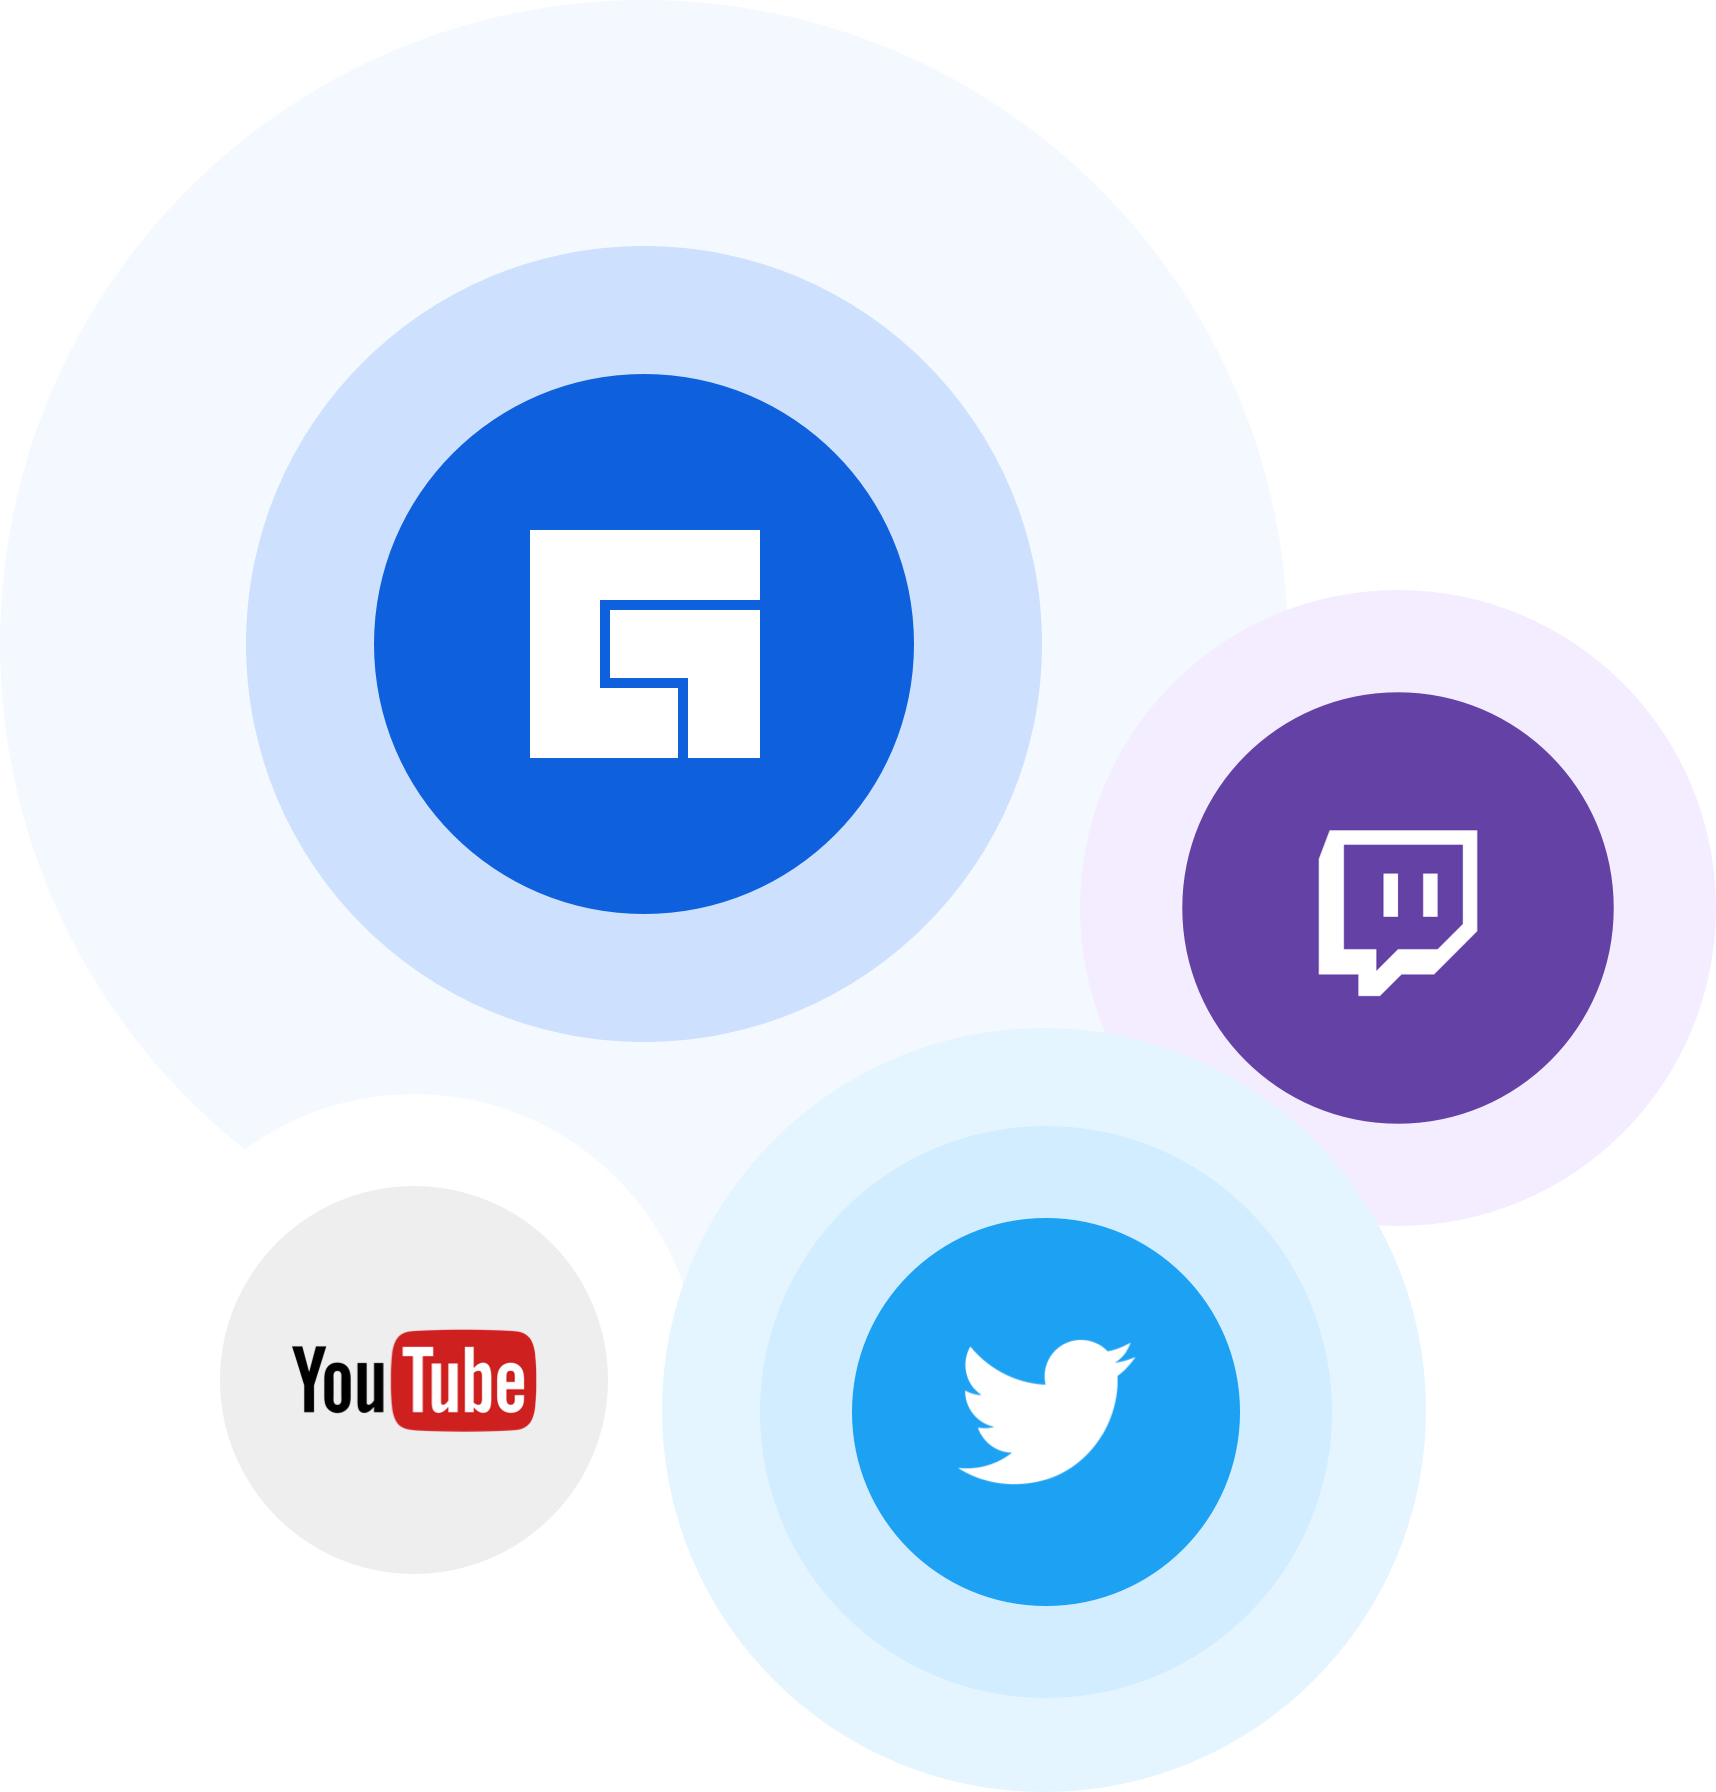 Online community logos for Facebook Gaming, Twitter, YouTube and Twitch